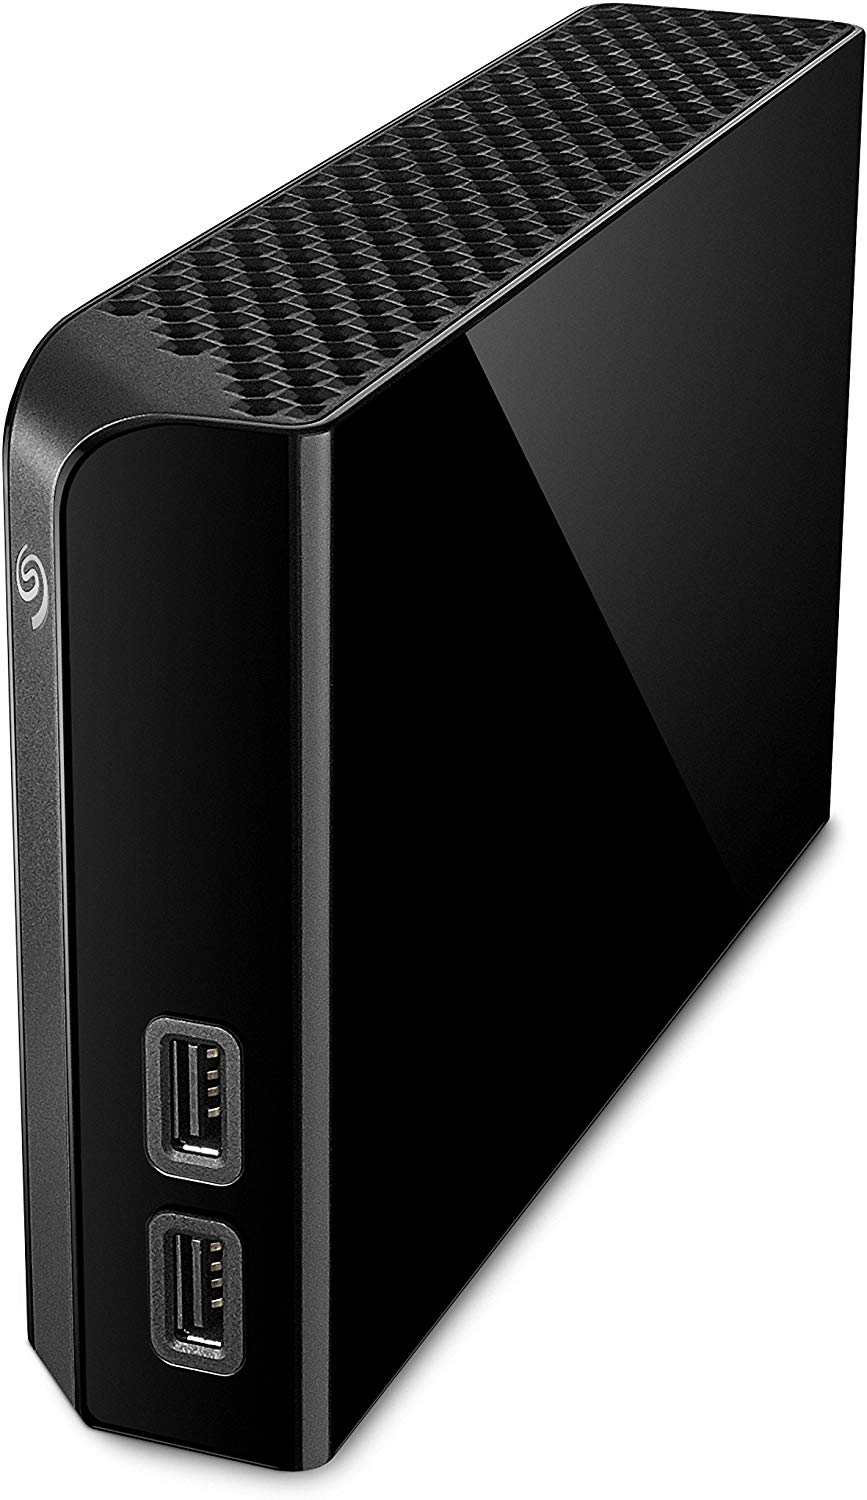 Seagate 6 TB Backup Plus Hub USB 3.0 Desktop 3.5 Inch External Hard Drive for PC and Mac £81.99 Delivered